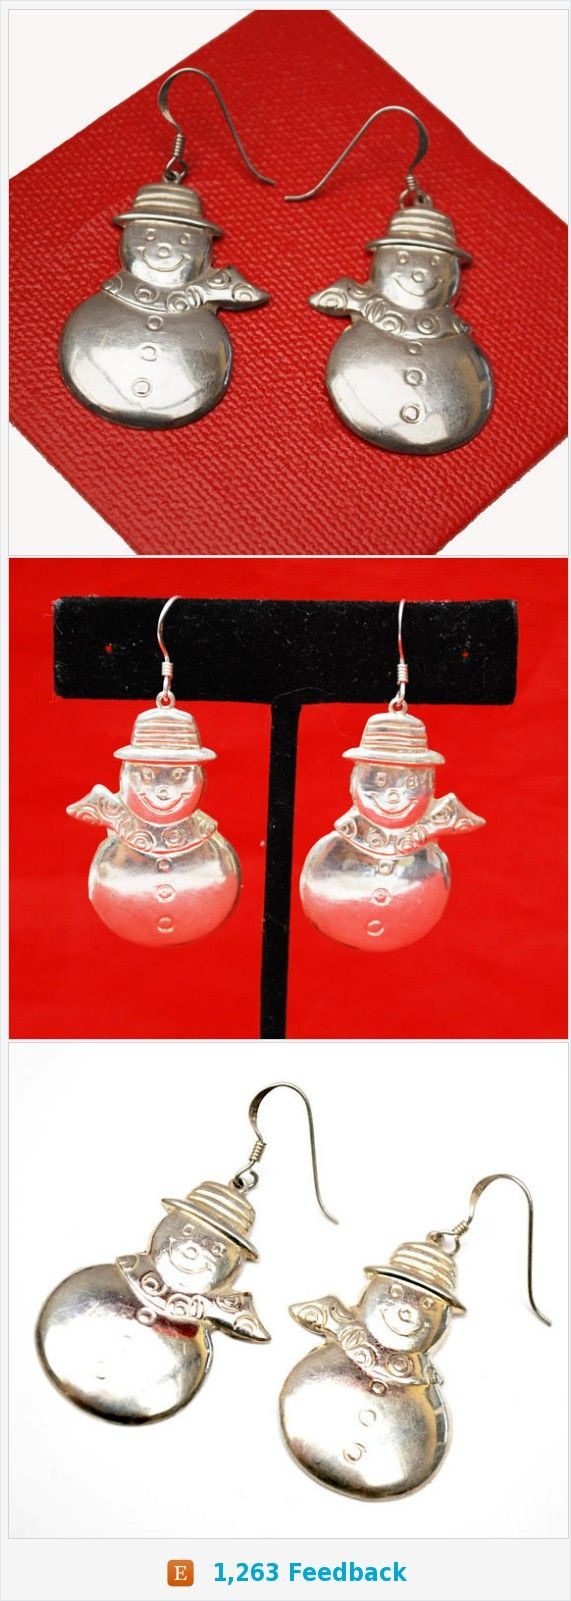 Sterling Snow Man Earrings - Silver Holidaychristmas - Winter figurine dangle earring https://www.etsy.com/serendipitytreasure/listing/545801668/sterling-snow-man-earrings-silver?ref=listing_published_alert